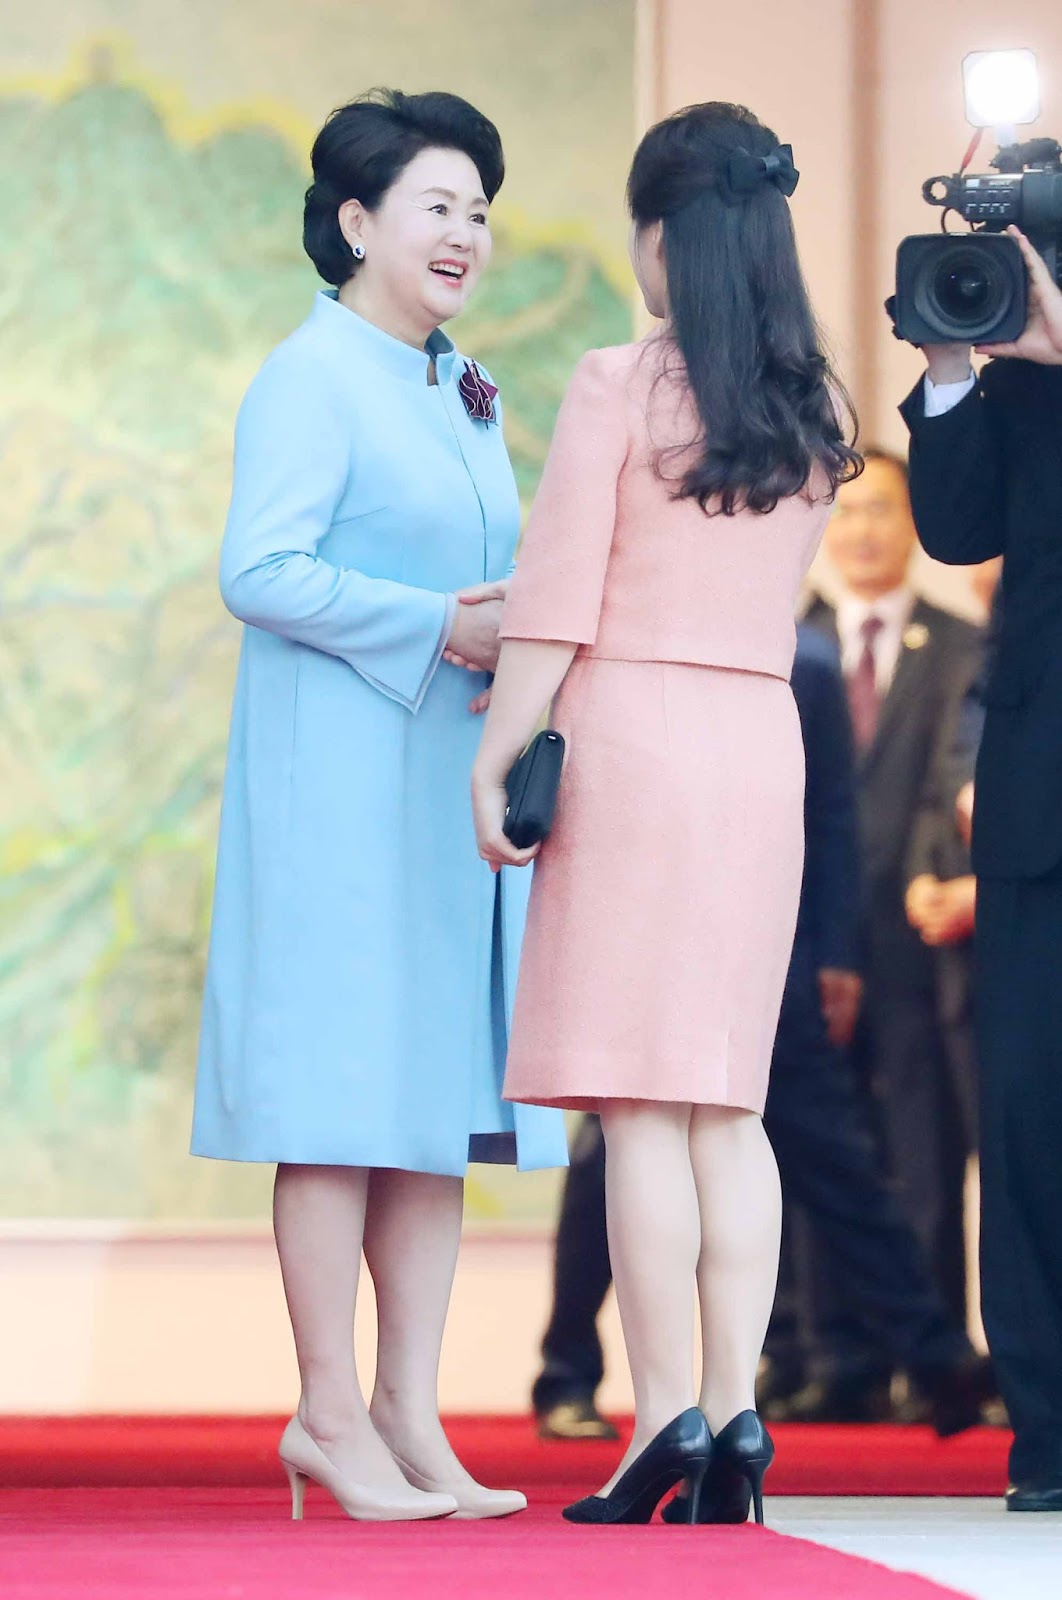 In a historic meeting, Ri Sol-ju, the wife of Kim-Jong Un (right, in the pink dress) and Kim Jung-sook , the wife of President Moon (left, in the blue dress), met, marking the first time the two Korean first ladies had ever come together.